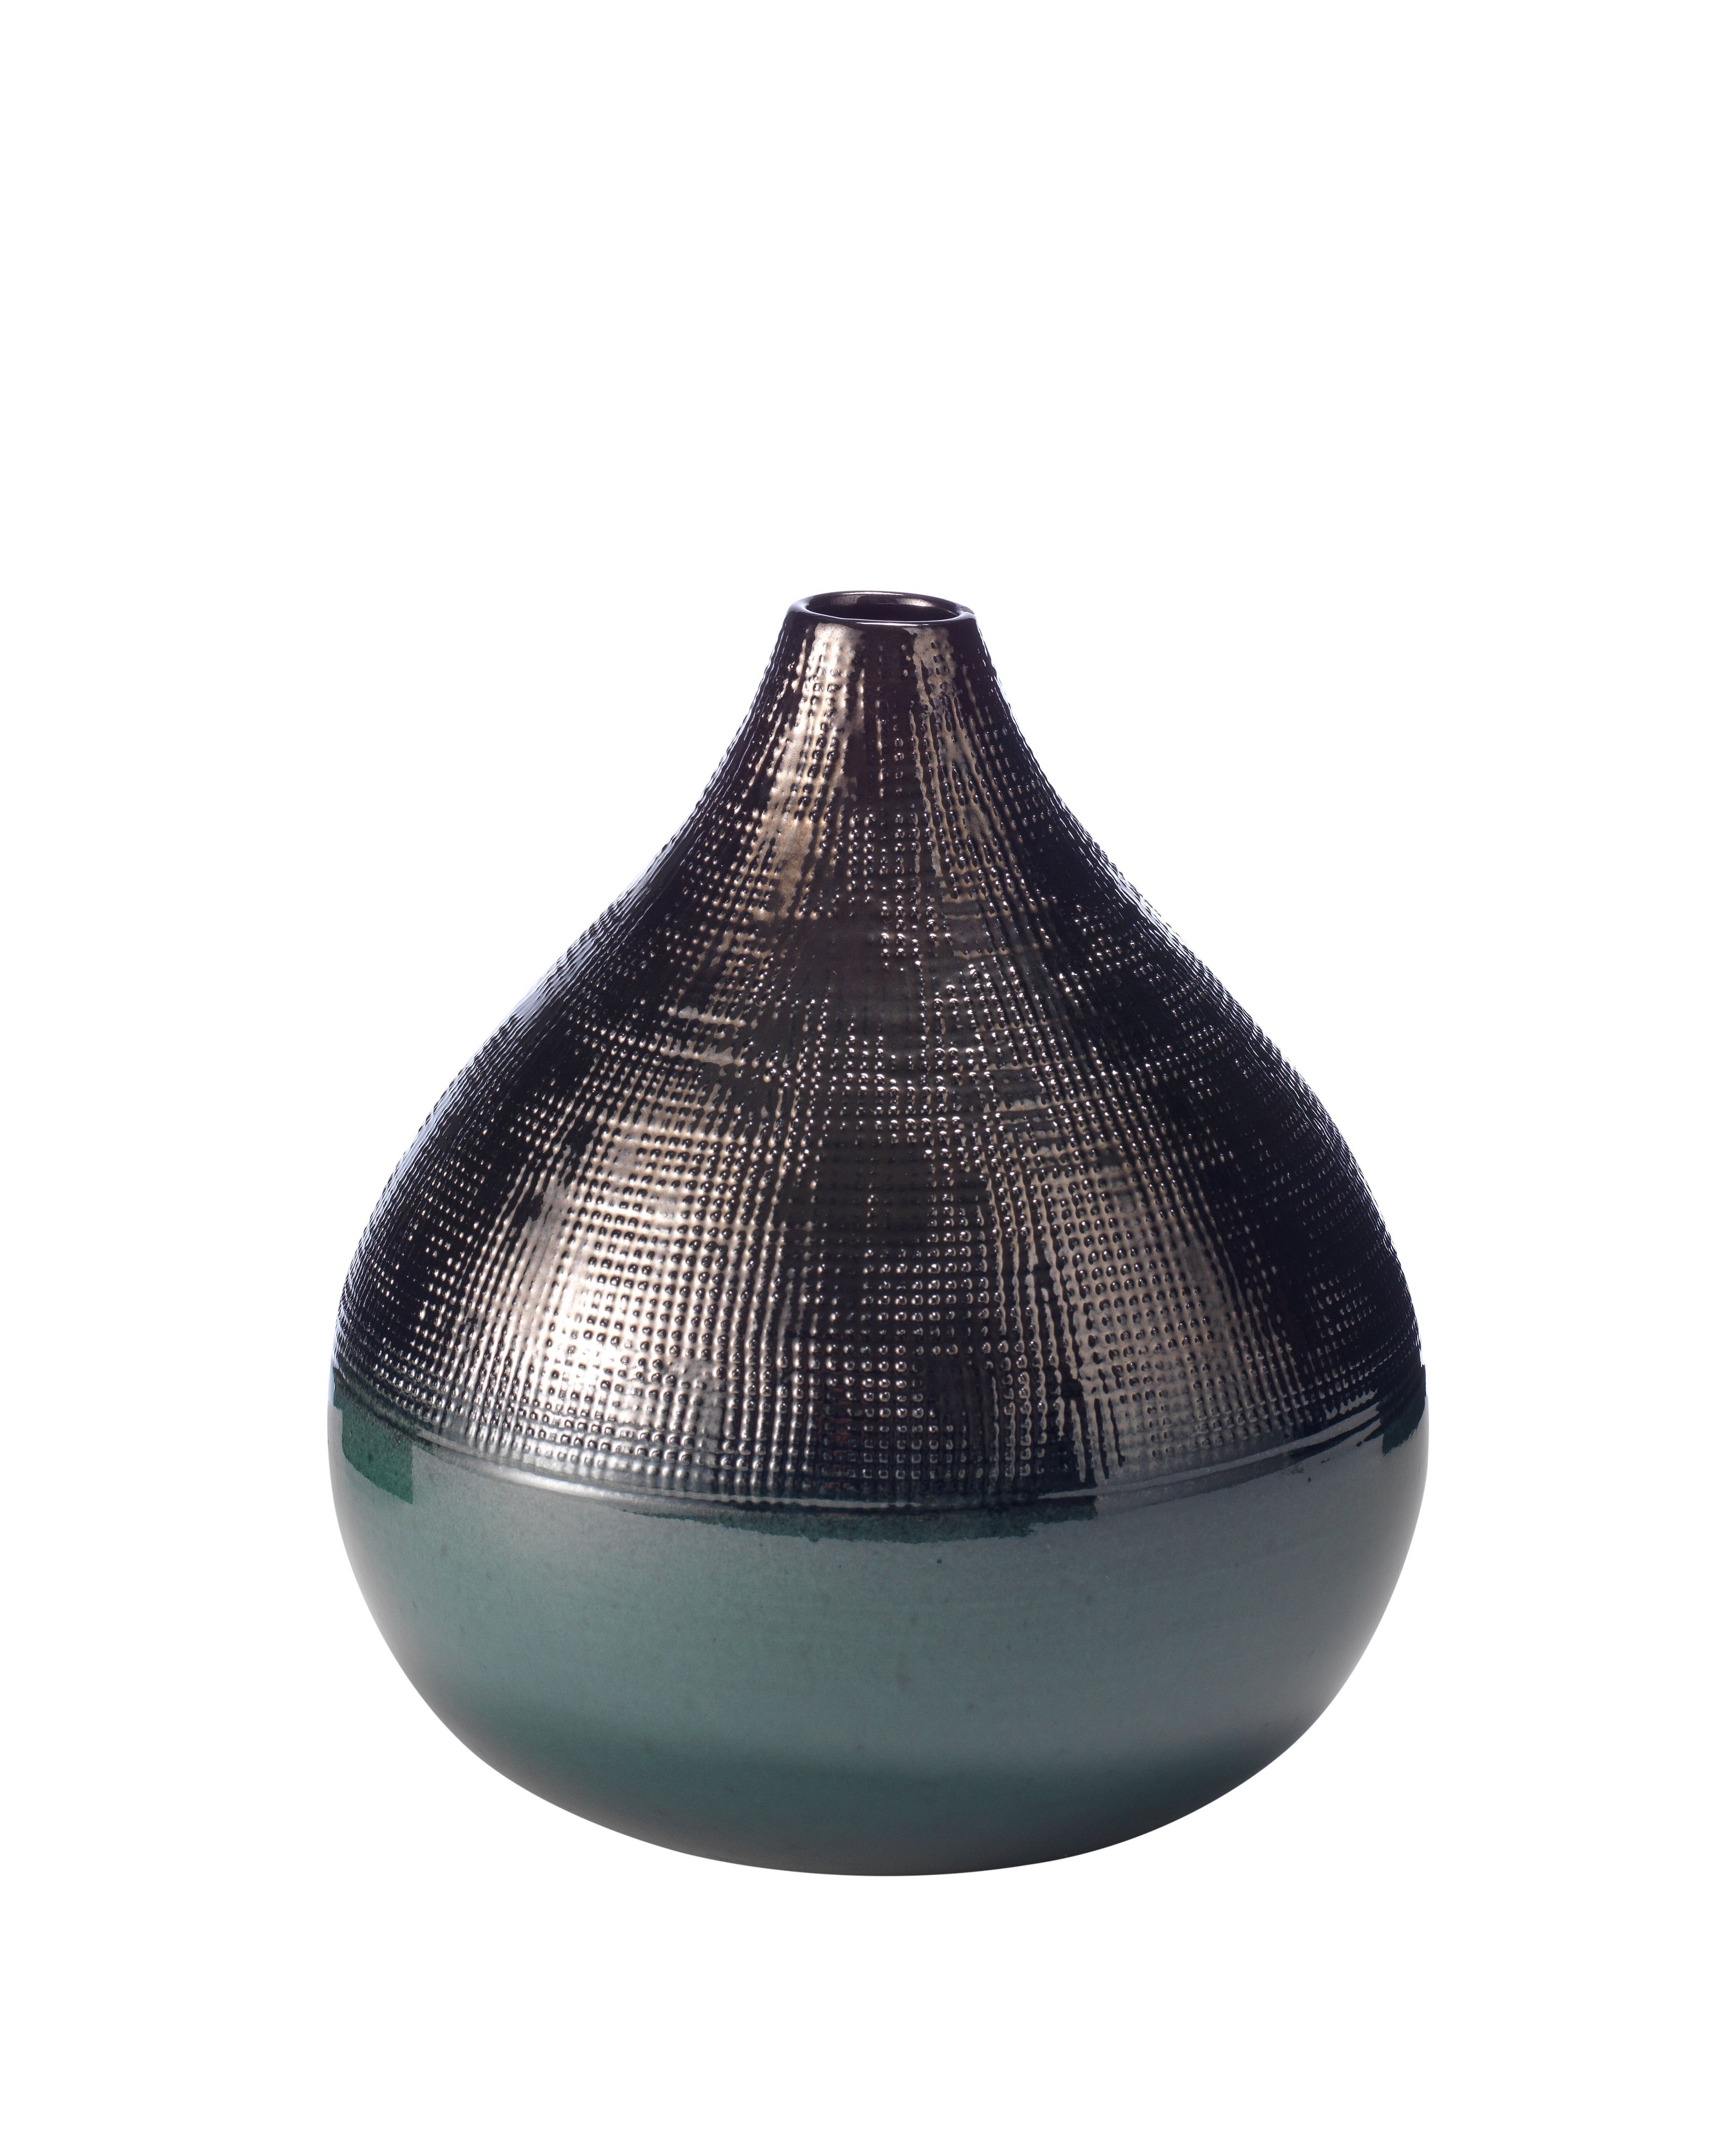 Living by Christiane Lemieux Living by Christiane Lemieux Casey tall contrast teal bud vase